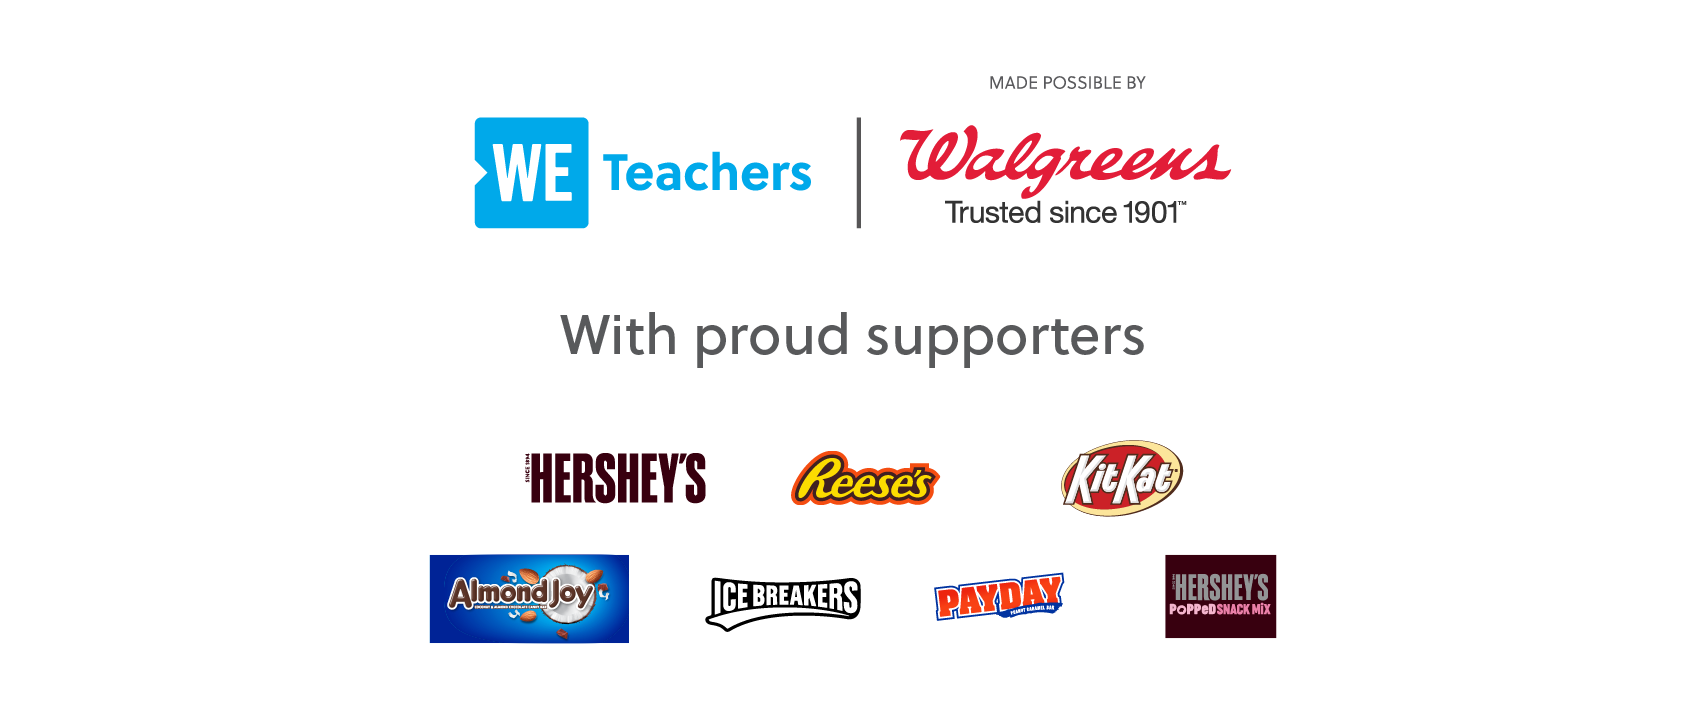 WE Teachers Made Possible by Walgreens and Proudly Supported by Hershey, Reese's, Kit Kat, Almond Joy, Ice Breakers, Payday, and Hershey's Popped Snack Mix